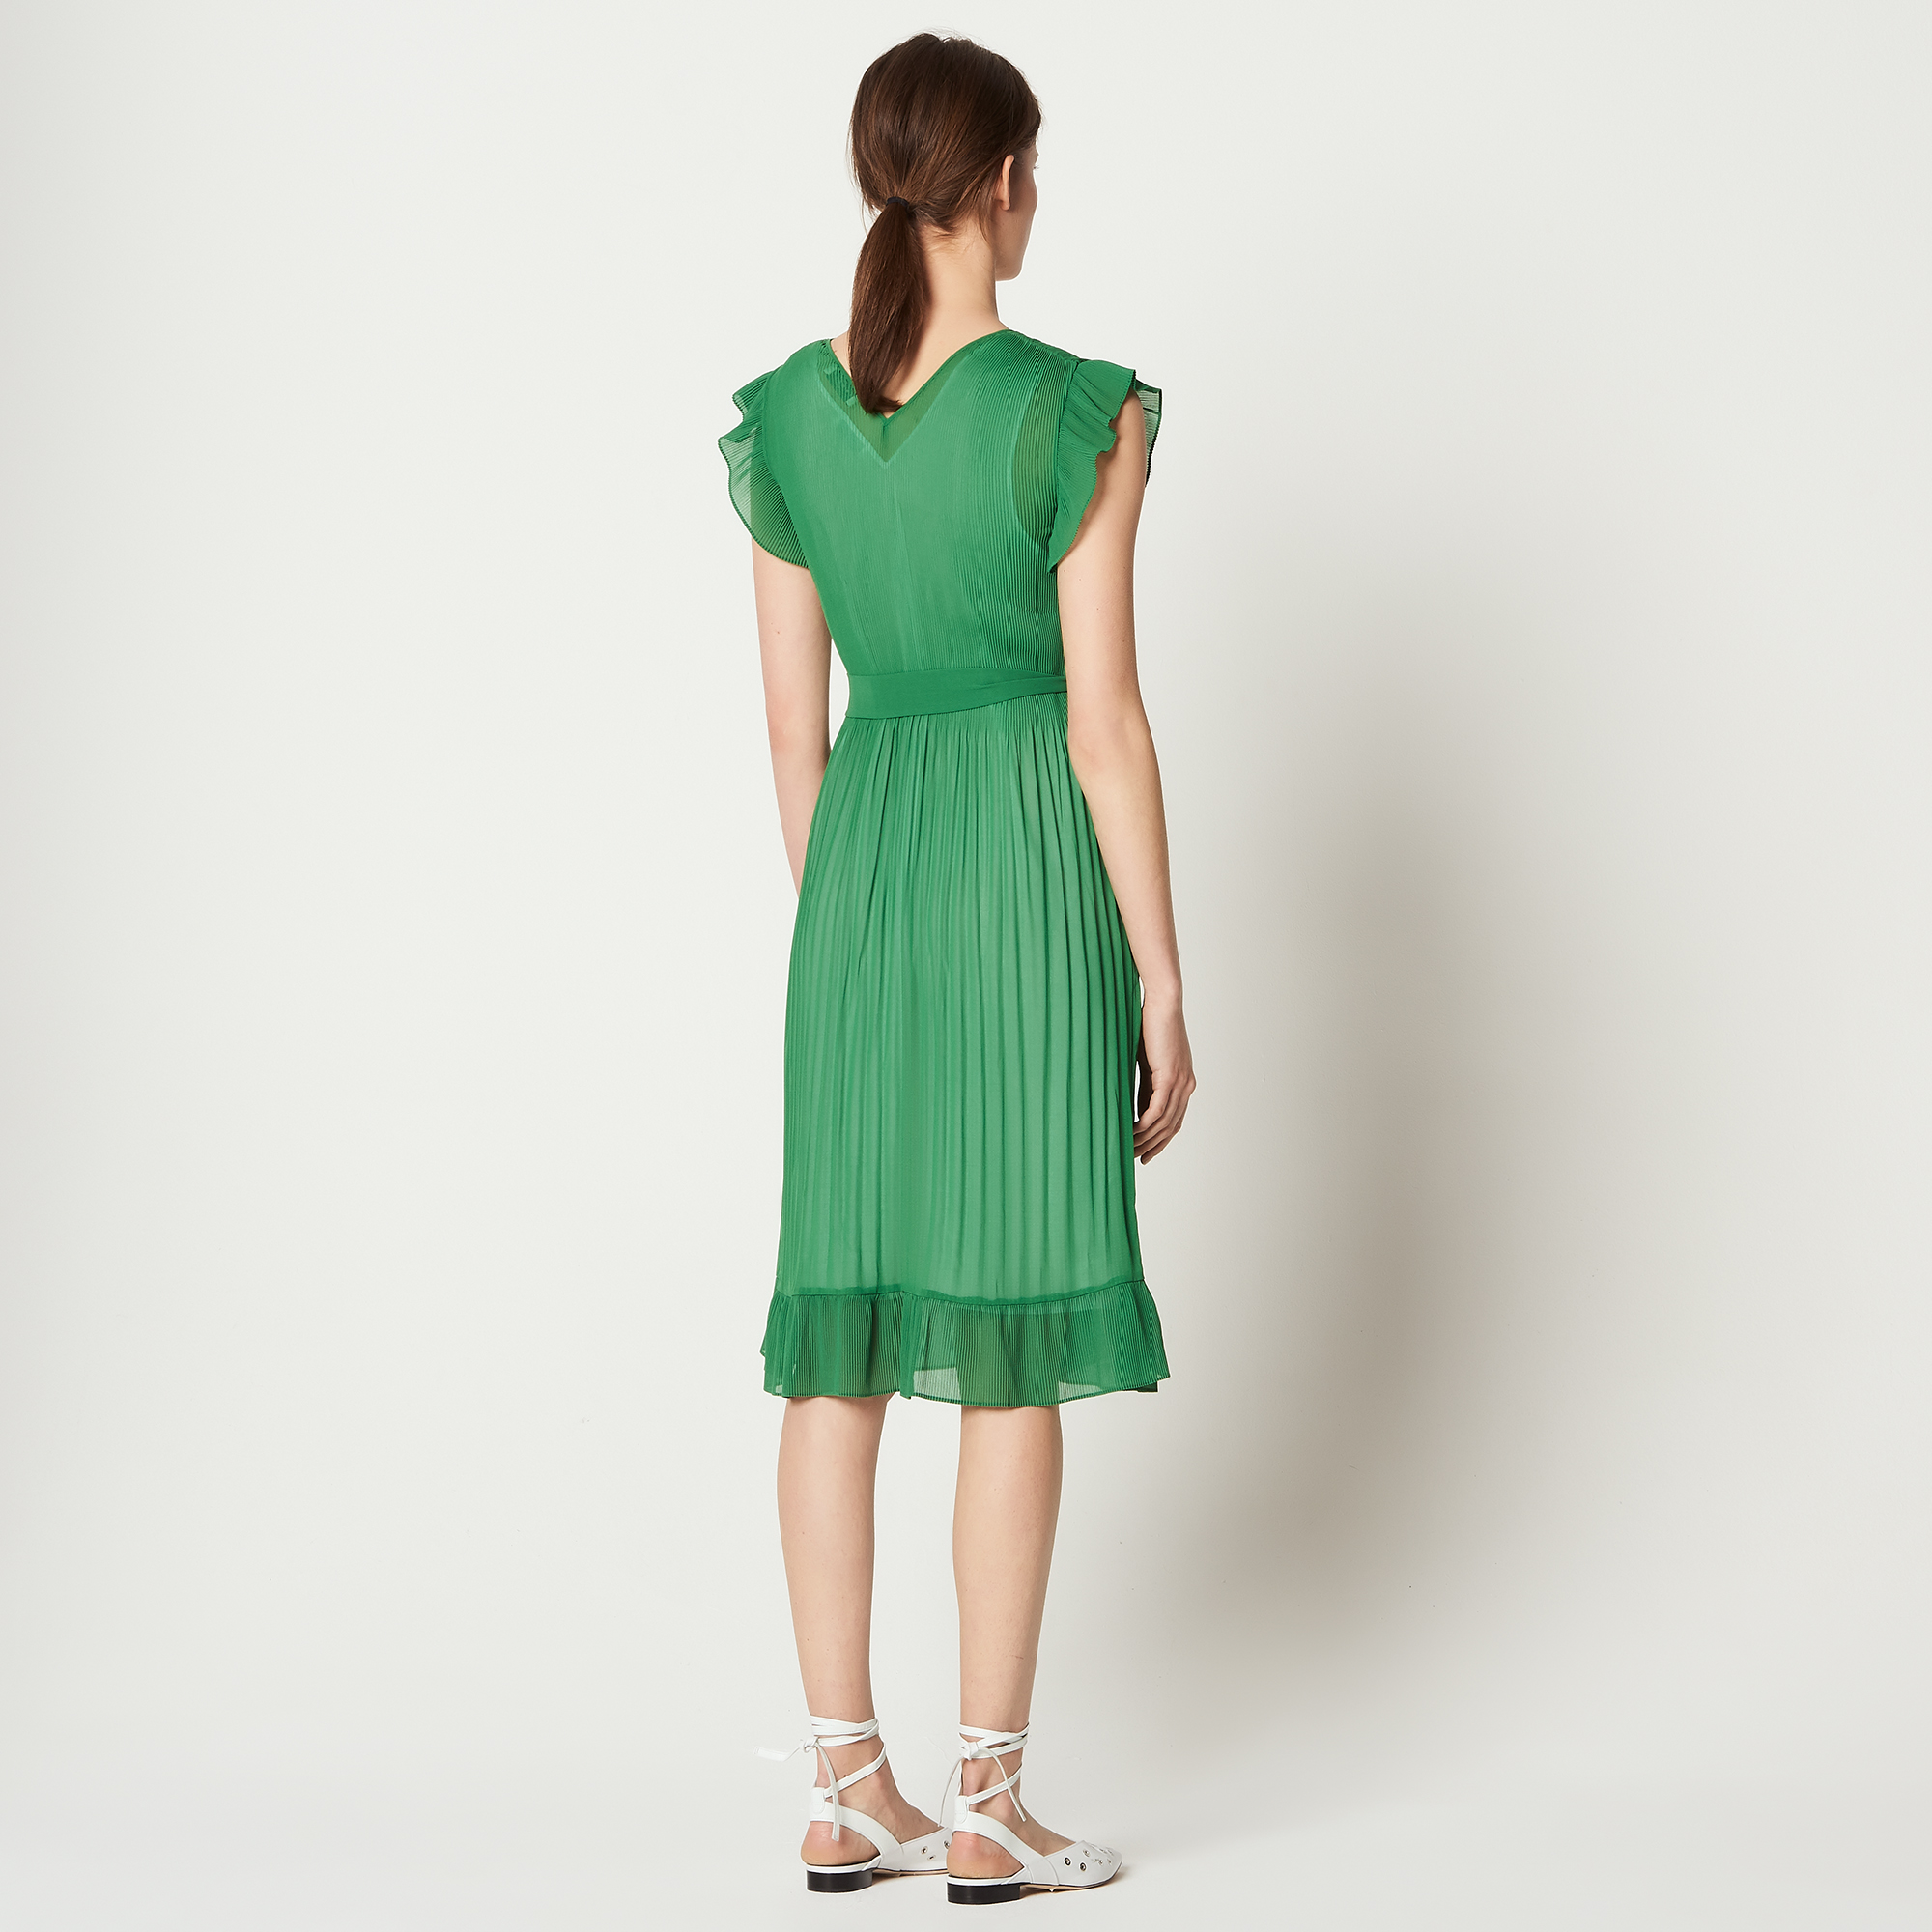 468cbf76264a ... Ruffled dress with belt   All Ready-to-wear color Green Grass ...